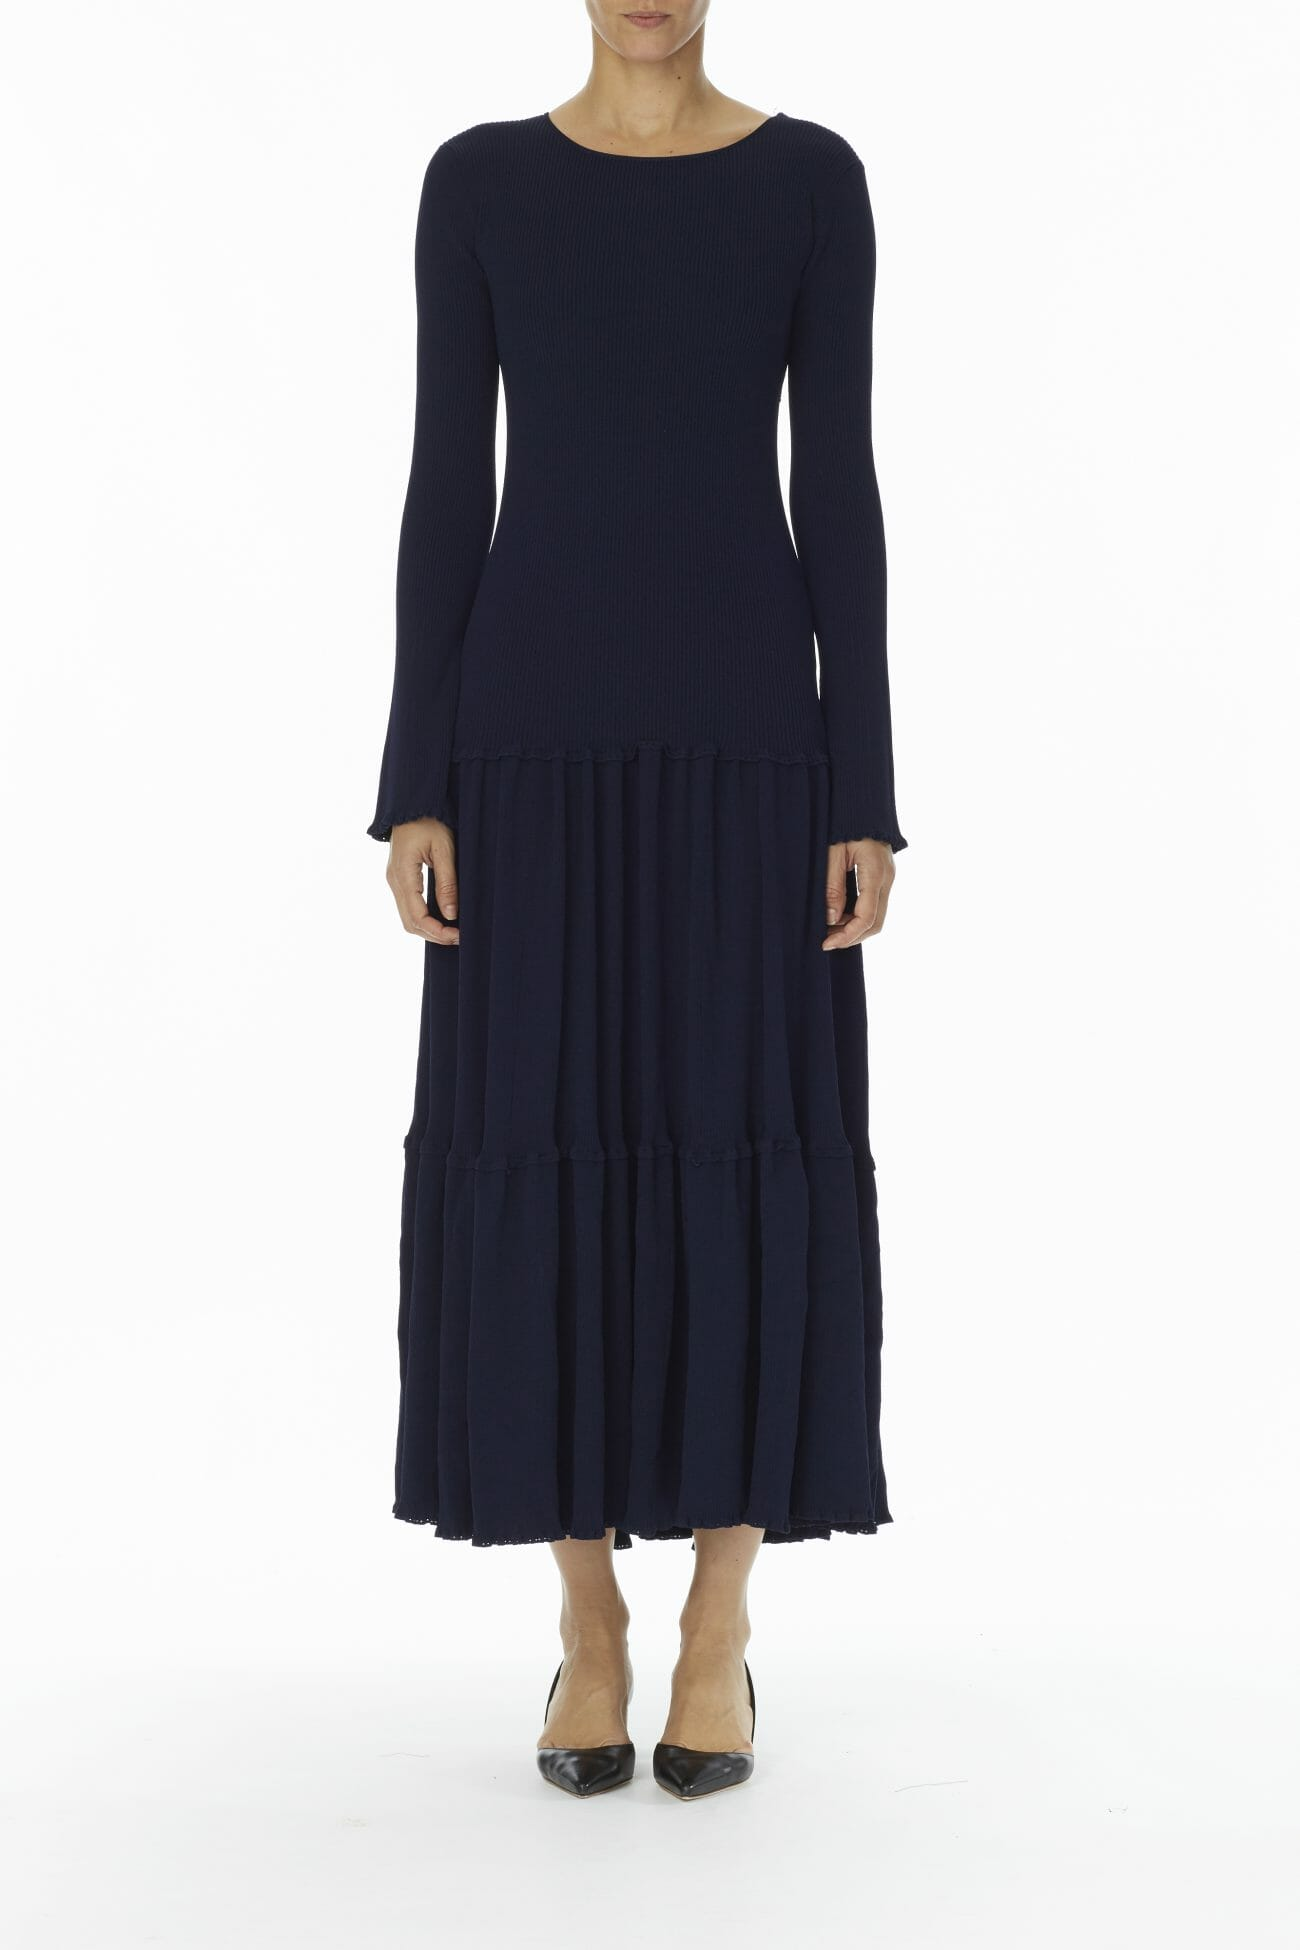 Carolina-Herrera-New-York-Resort-2019-look-150-blue-dress-long-casual